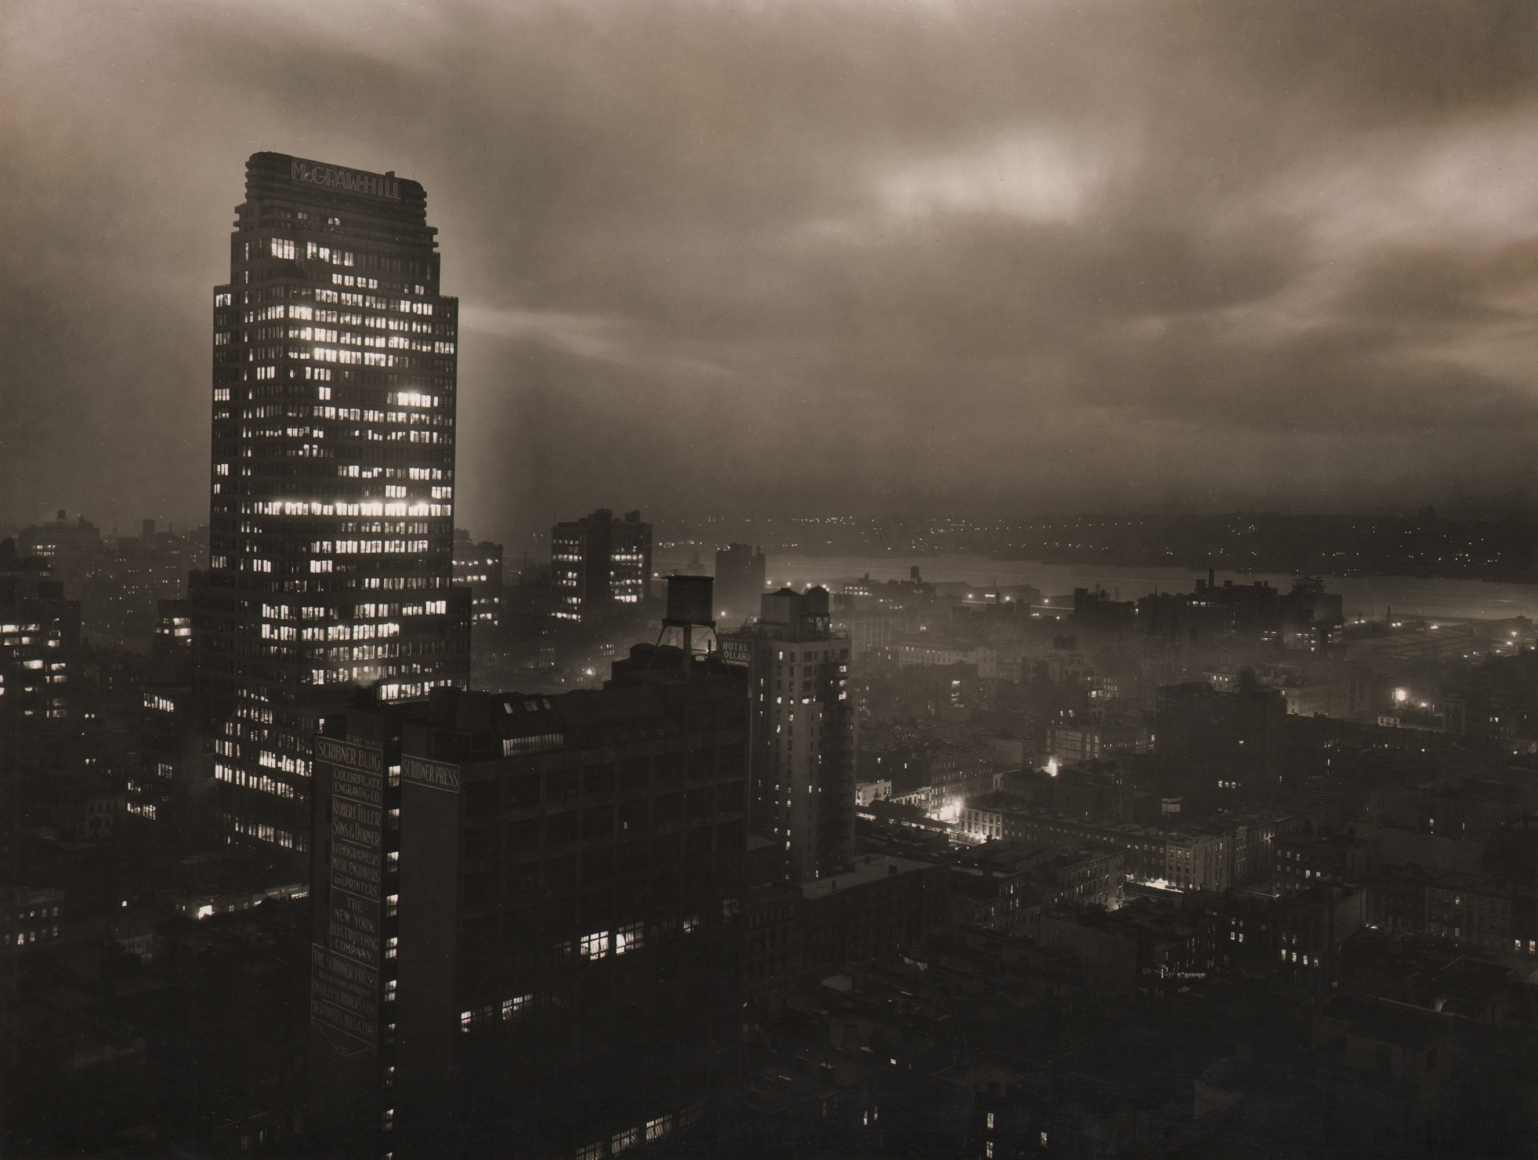 Paul J. Woolf, McGraw Hill Building & Hudson River from Roof of the Hotel Lincoln, c. 1935. Night time cityscape with tell McGraw Hill Building in center left of the frame beneath overcast sky.